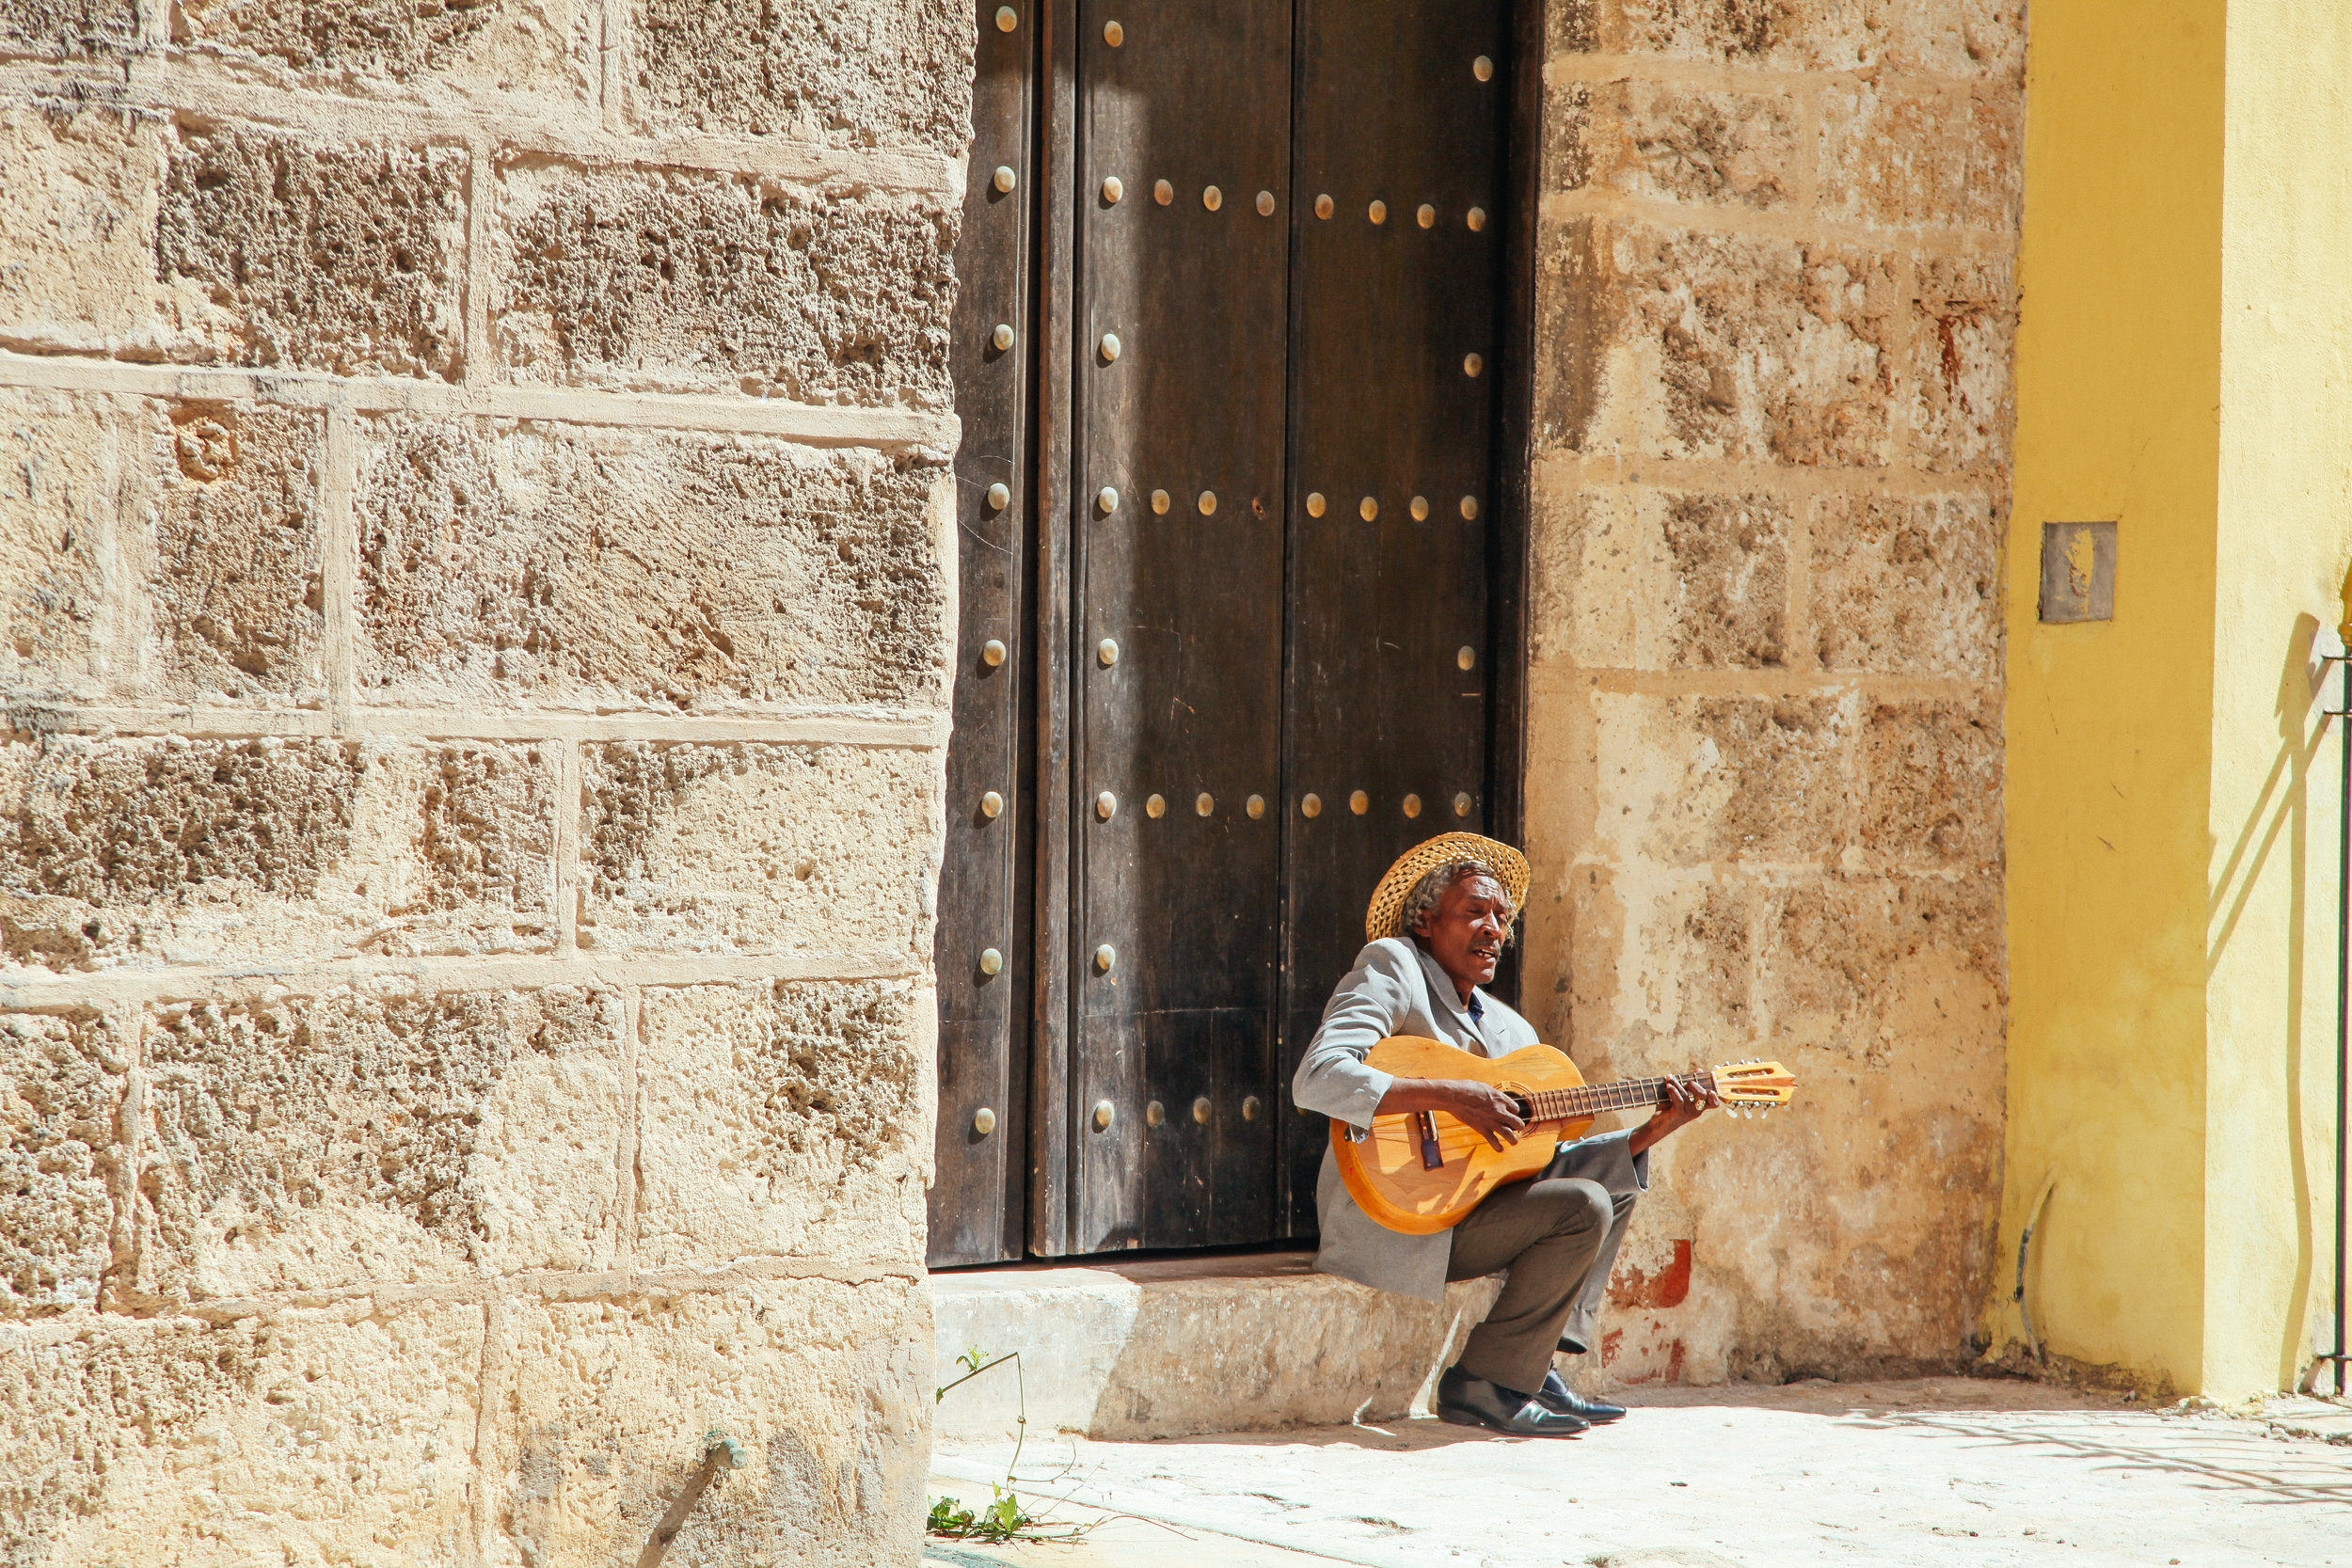 Street musician in Havana, Cuba. Photo by  Amanda Bjorn